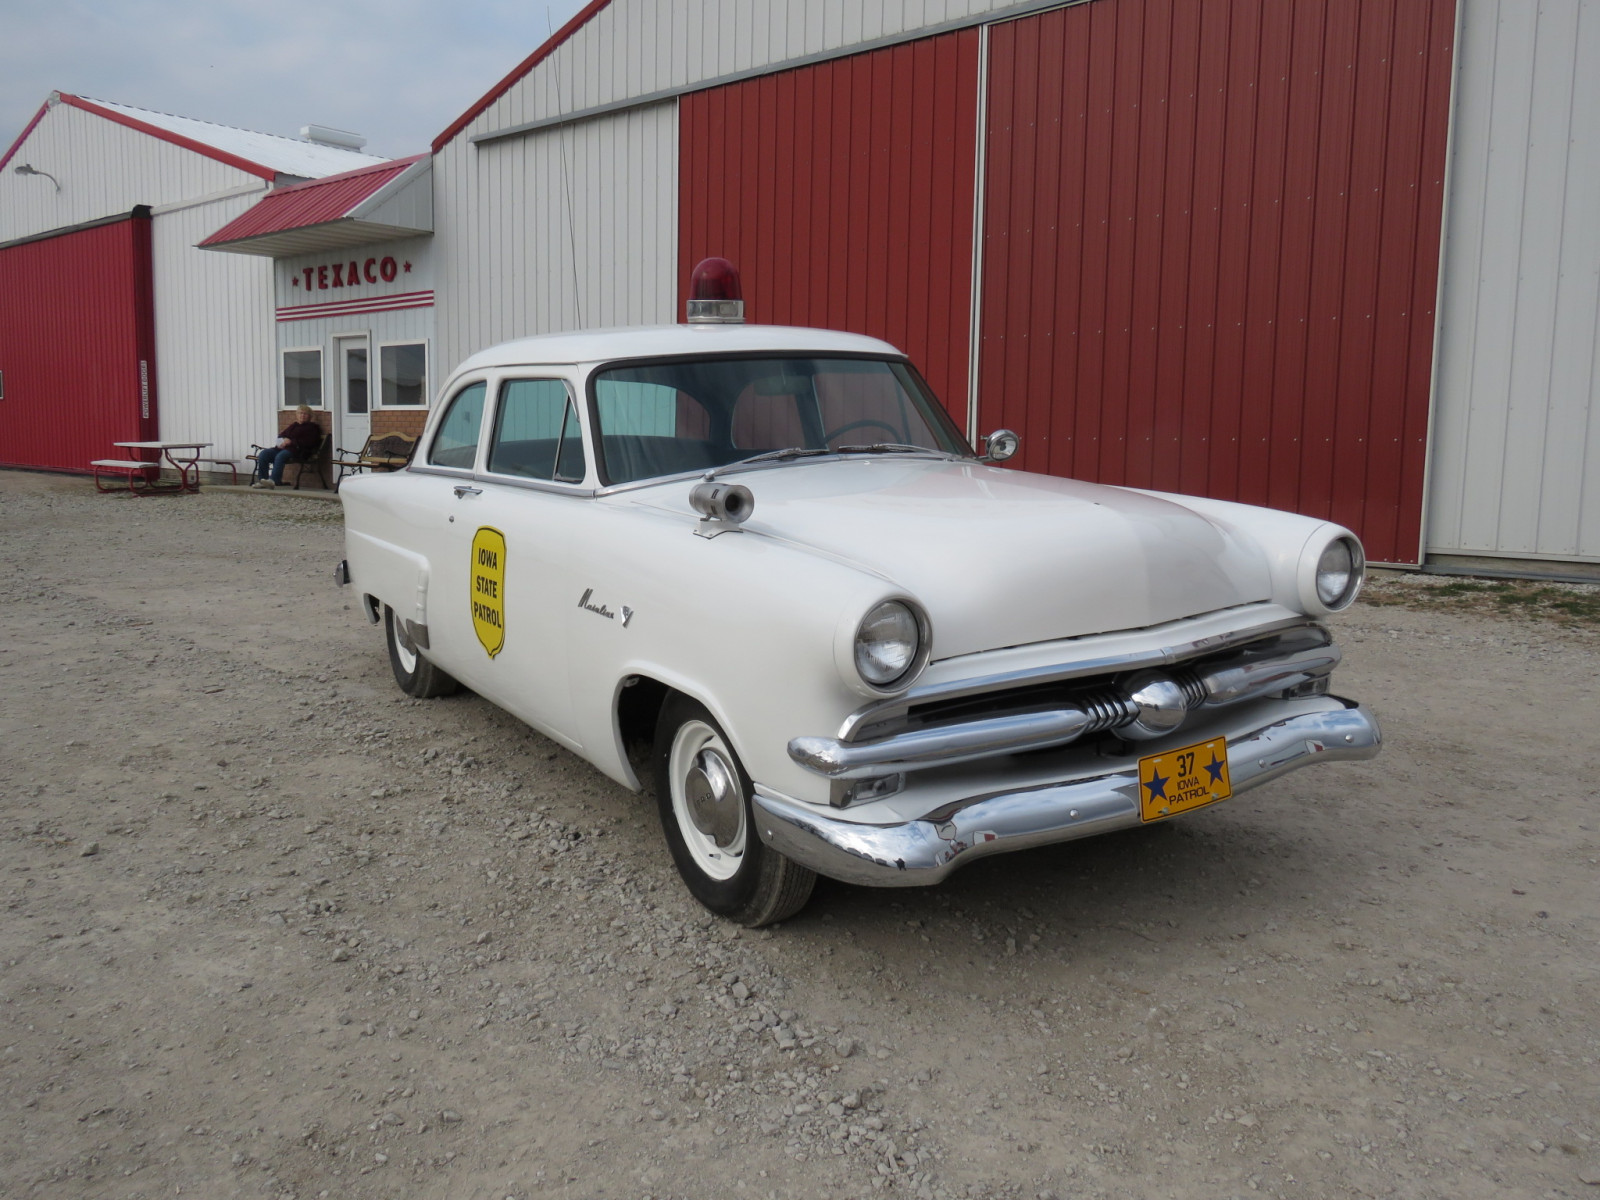 1953 Ford Mainline Iowa Patrol Car - Image 1